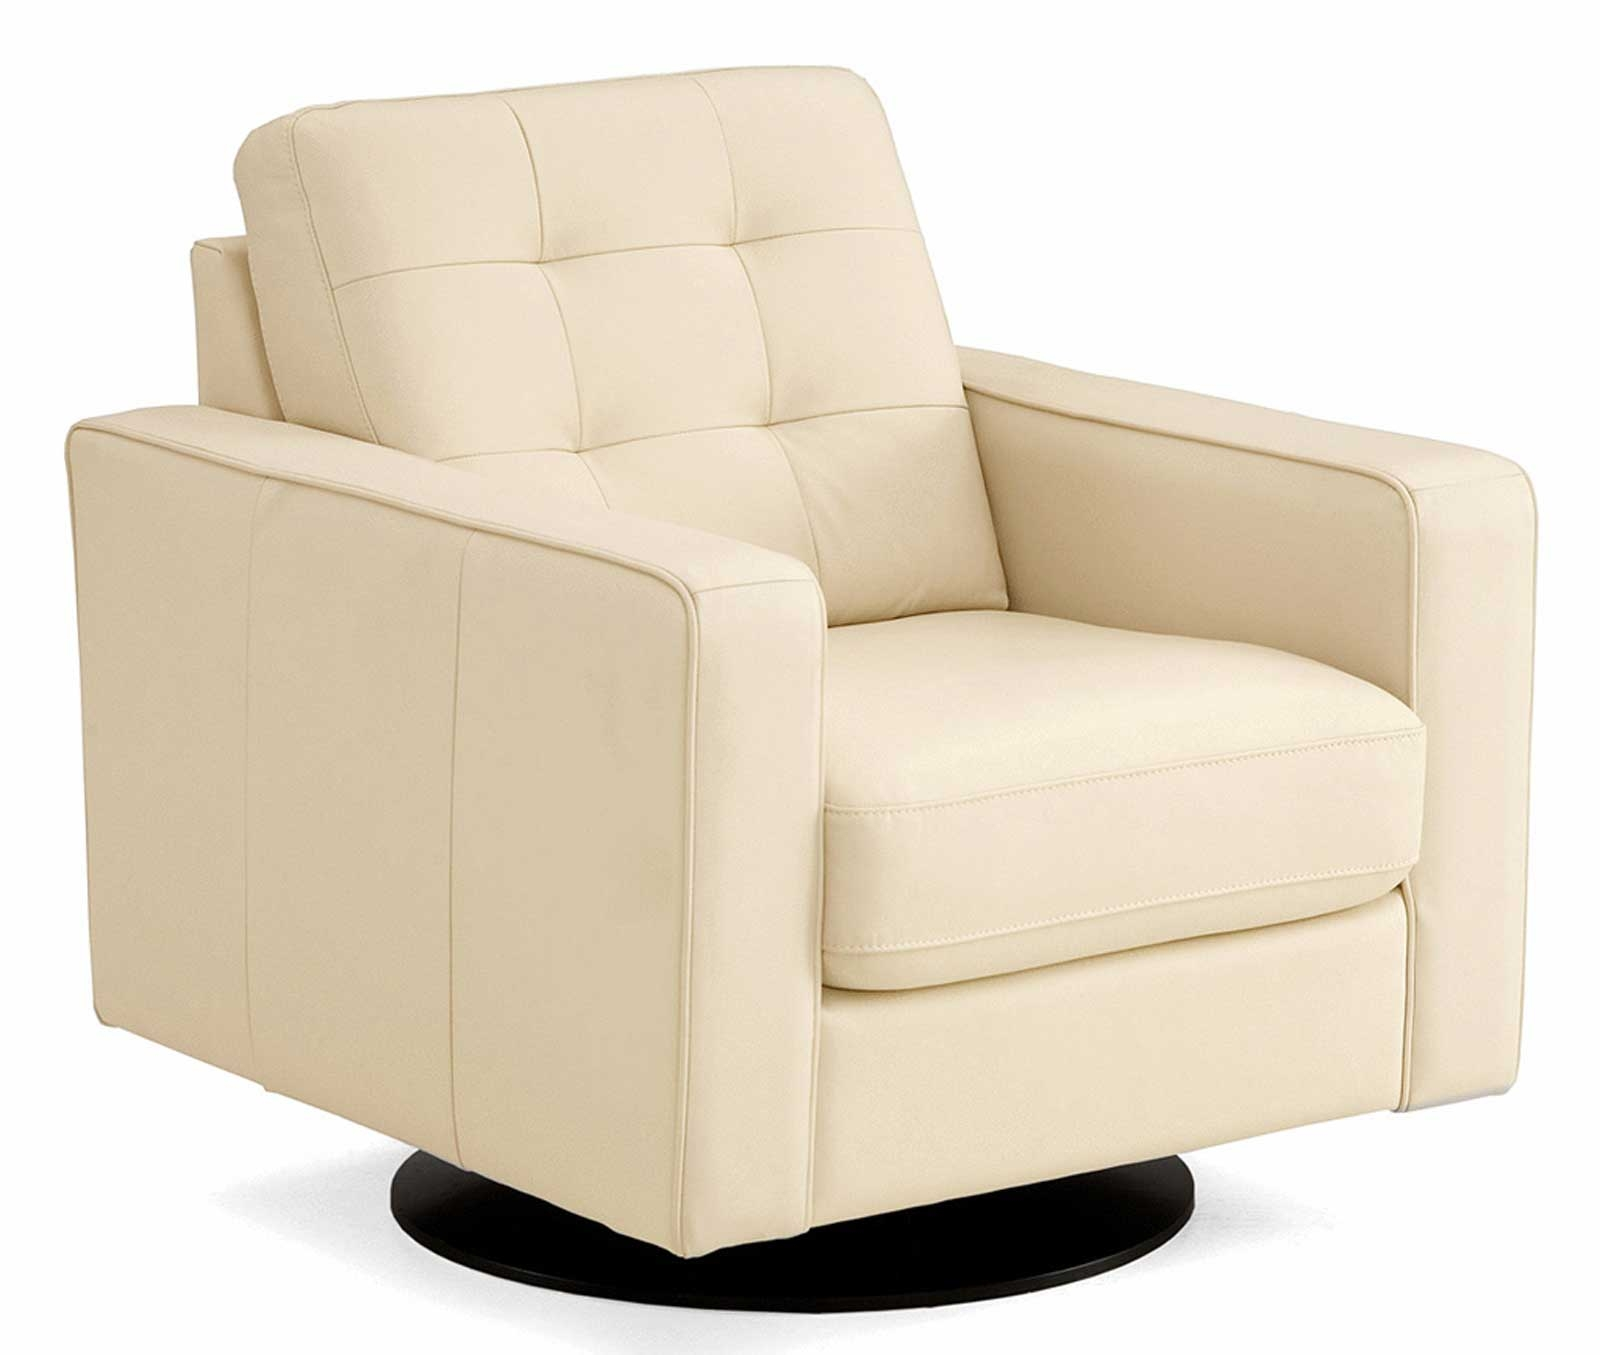 51 Swivel Chairs Recliners And Chairs Glider Chairs Braxton Regarding Swivel Sofa Chairs (Image 1 of 15)